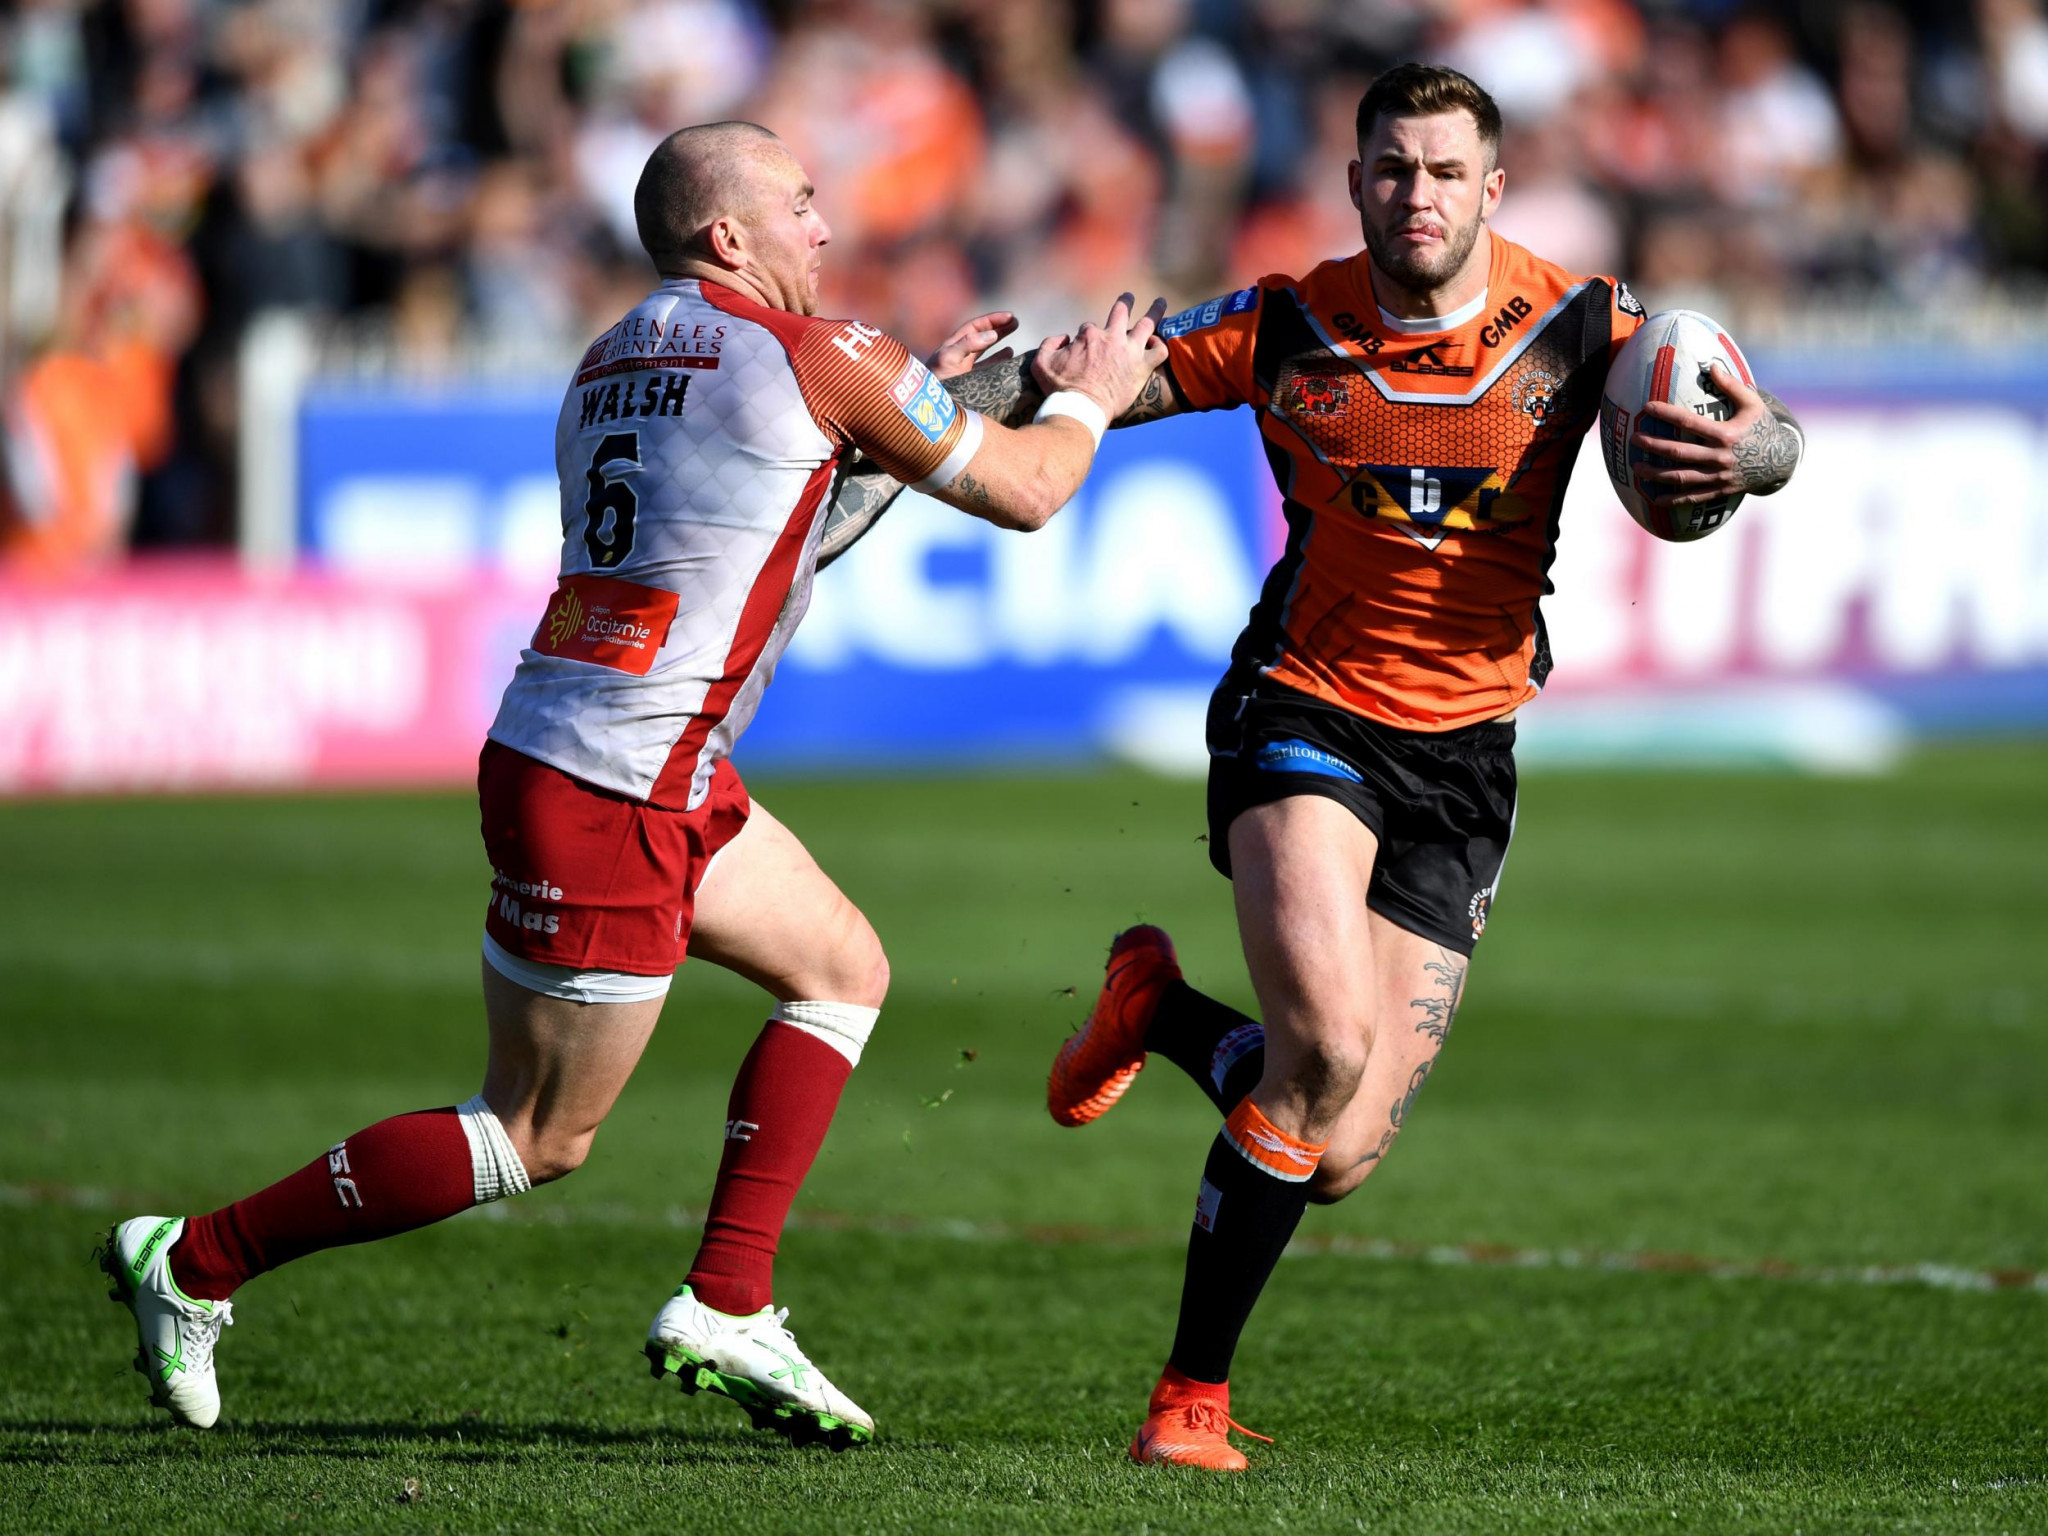 Zak Hardaker, right, was dropped by Castleford Tigers before the Super League Grand Final against his former club Leeds Rhinos for an unspecified breach of discipline before it was revealed he had tested positive for cocaine ©Getty Images